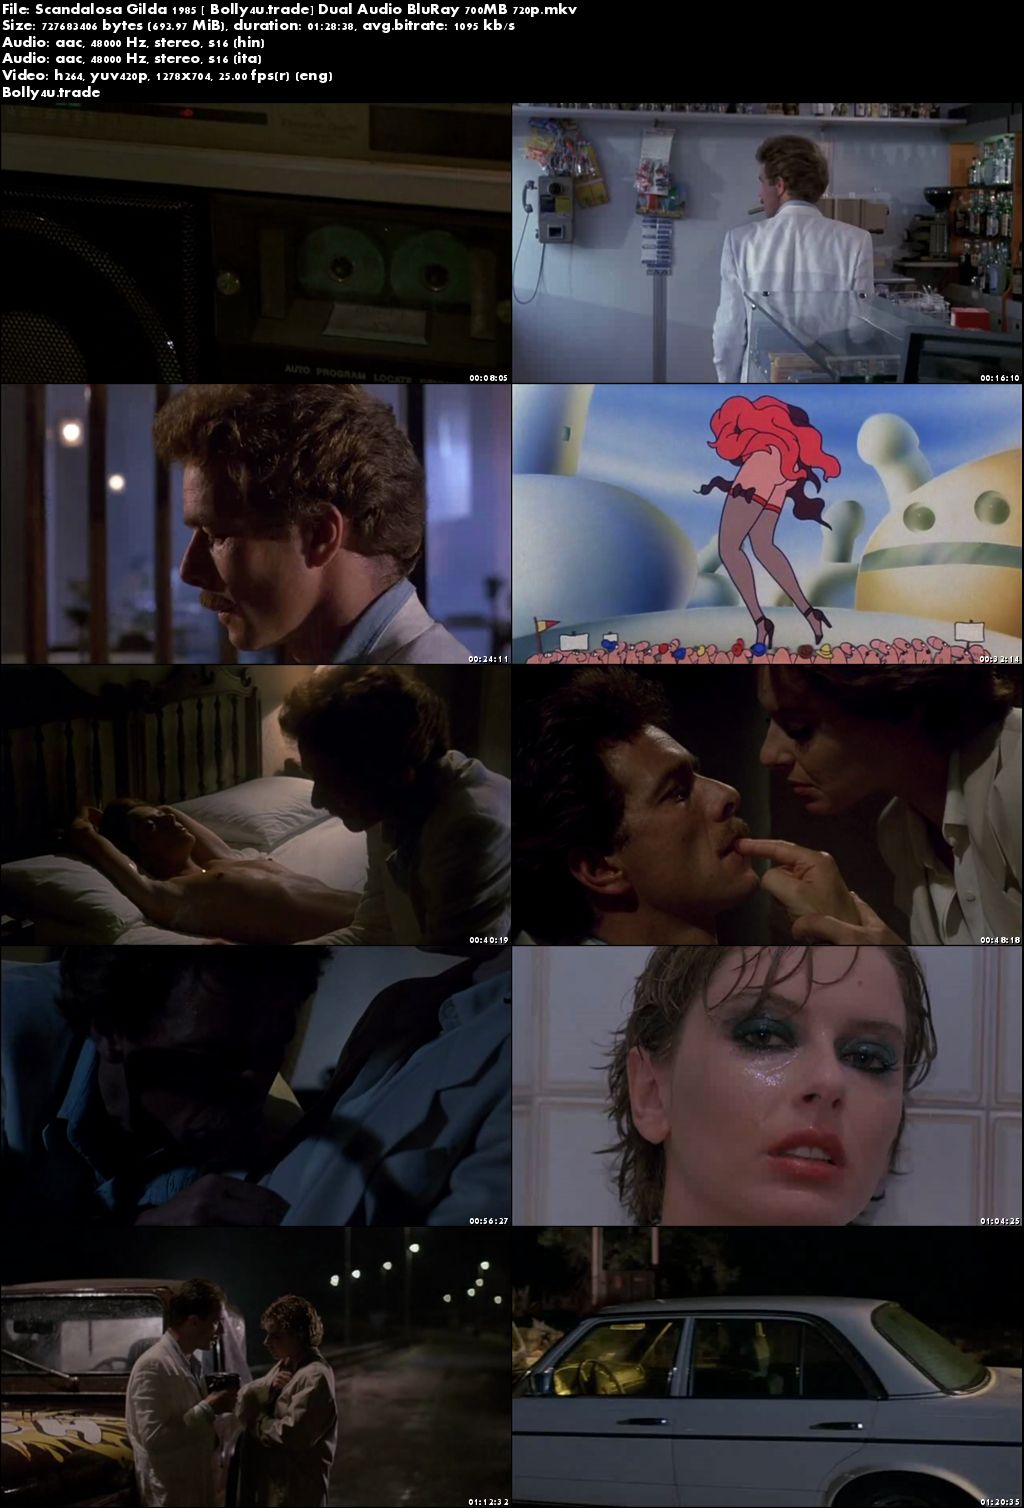 [18+] Scandalosa Gilda 1985 BRRip 300MB Hindi Dual Audio 480p Download